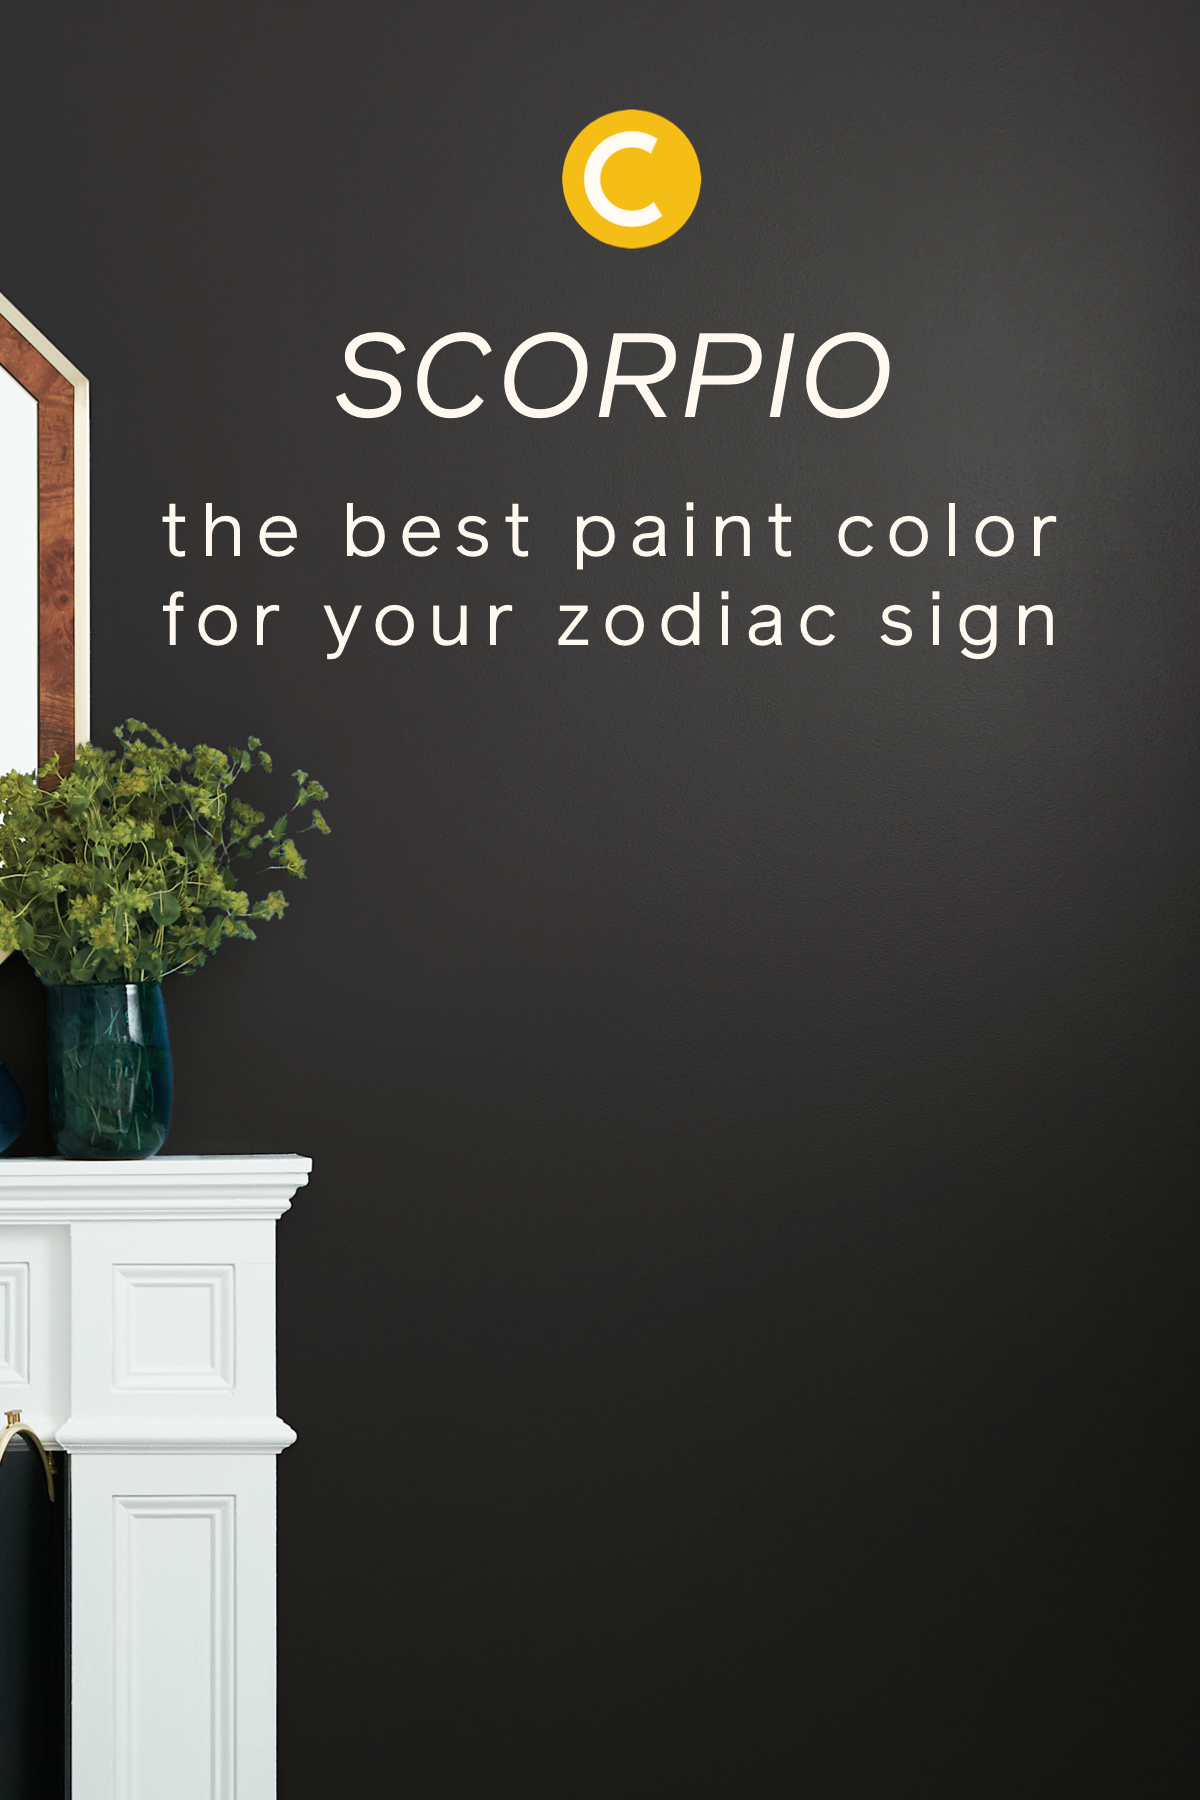 The Best Paint Color For Your Zodiac Sign With Images Zodiac